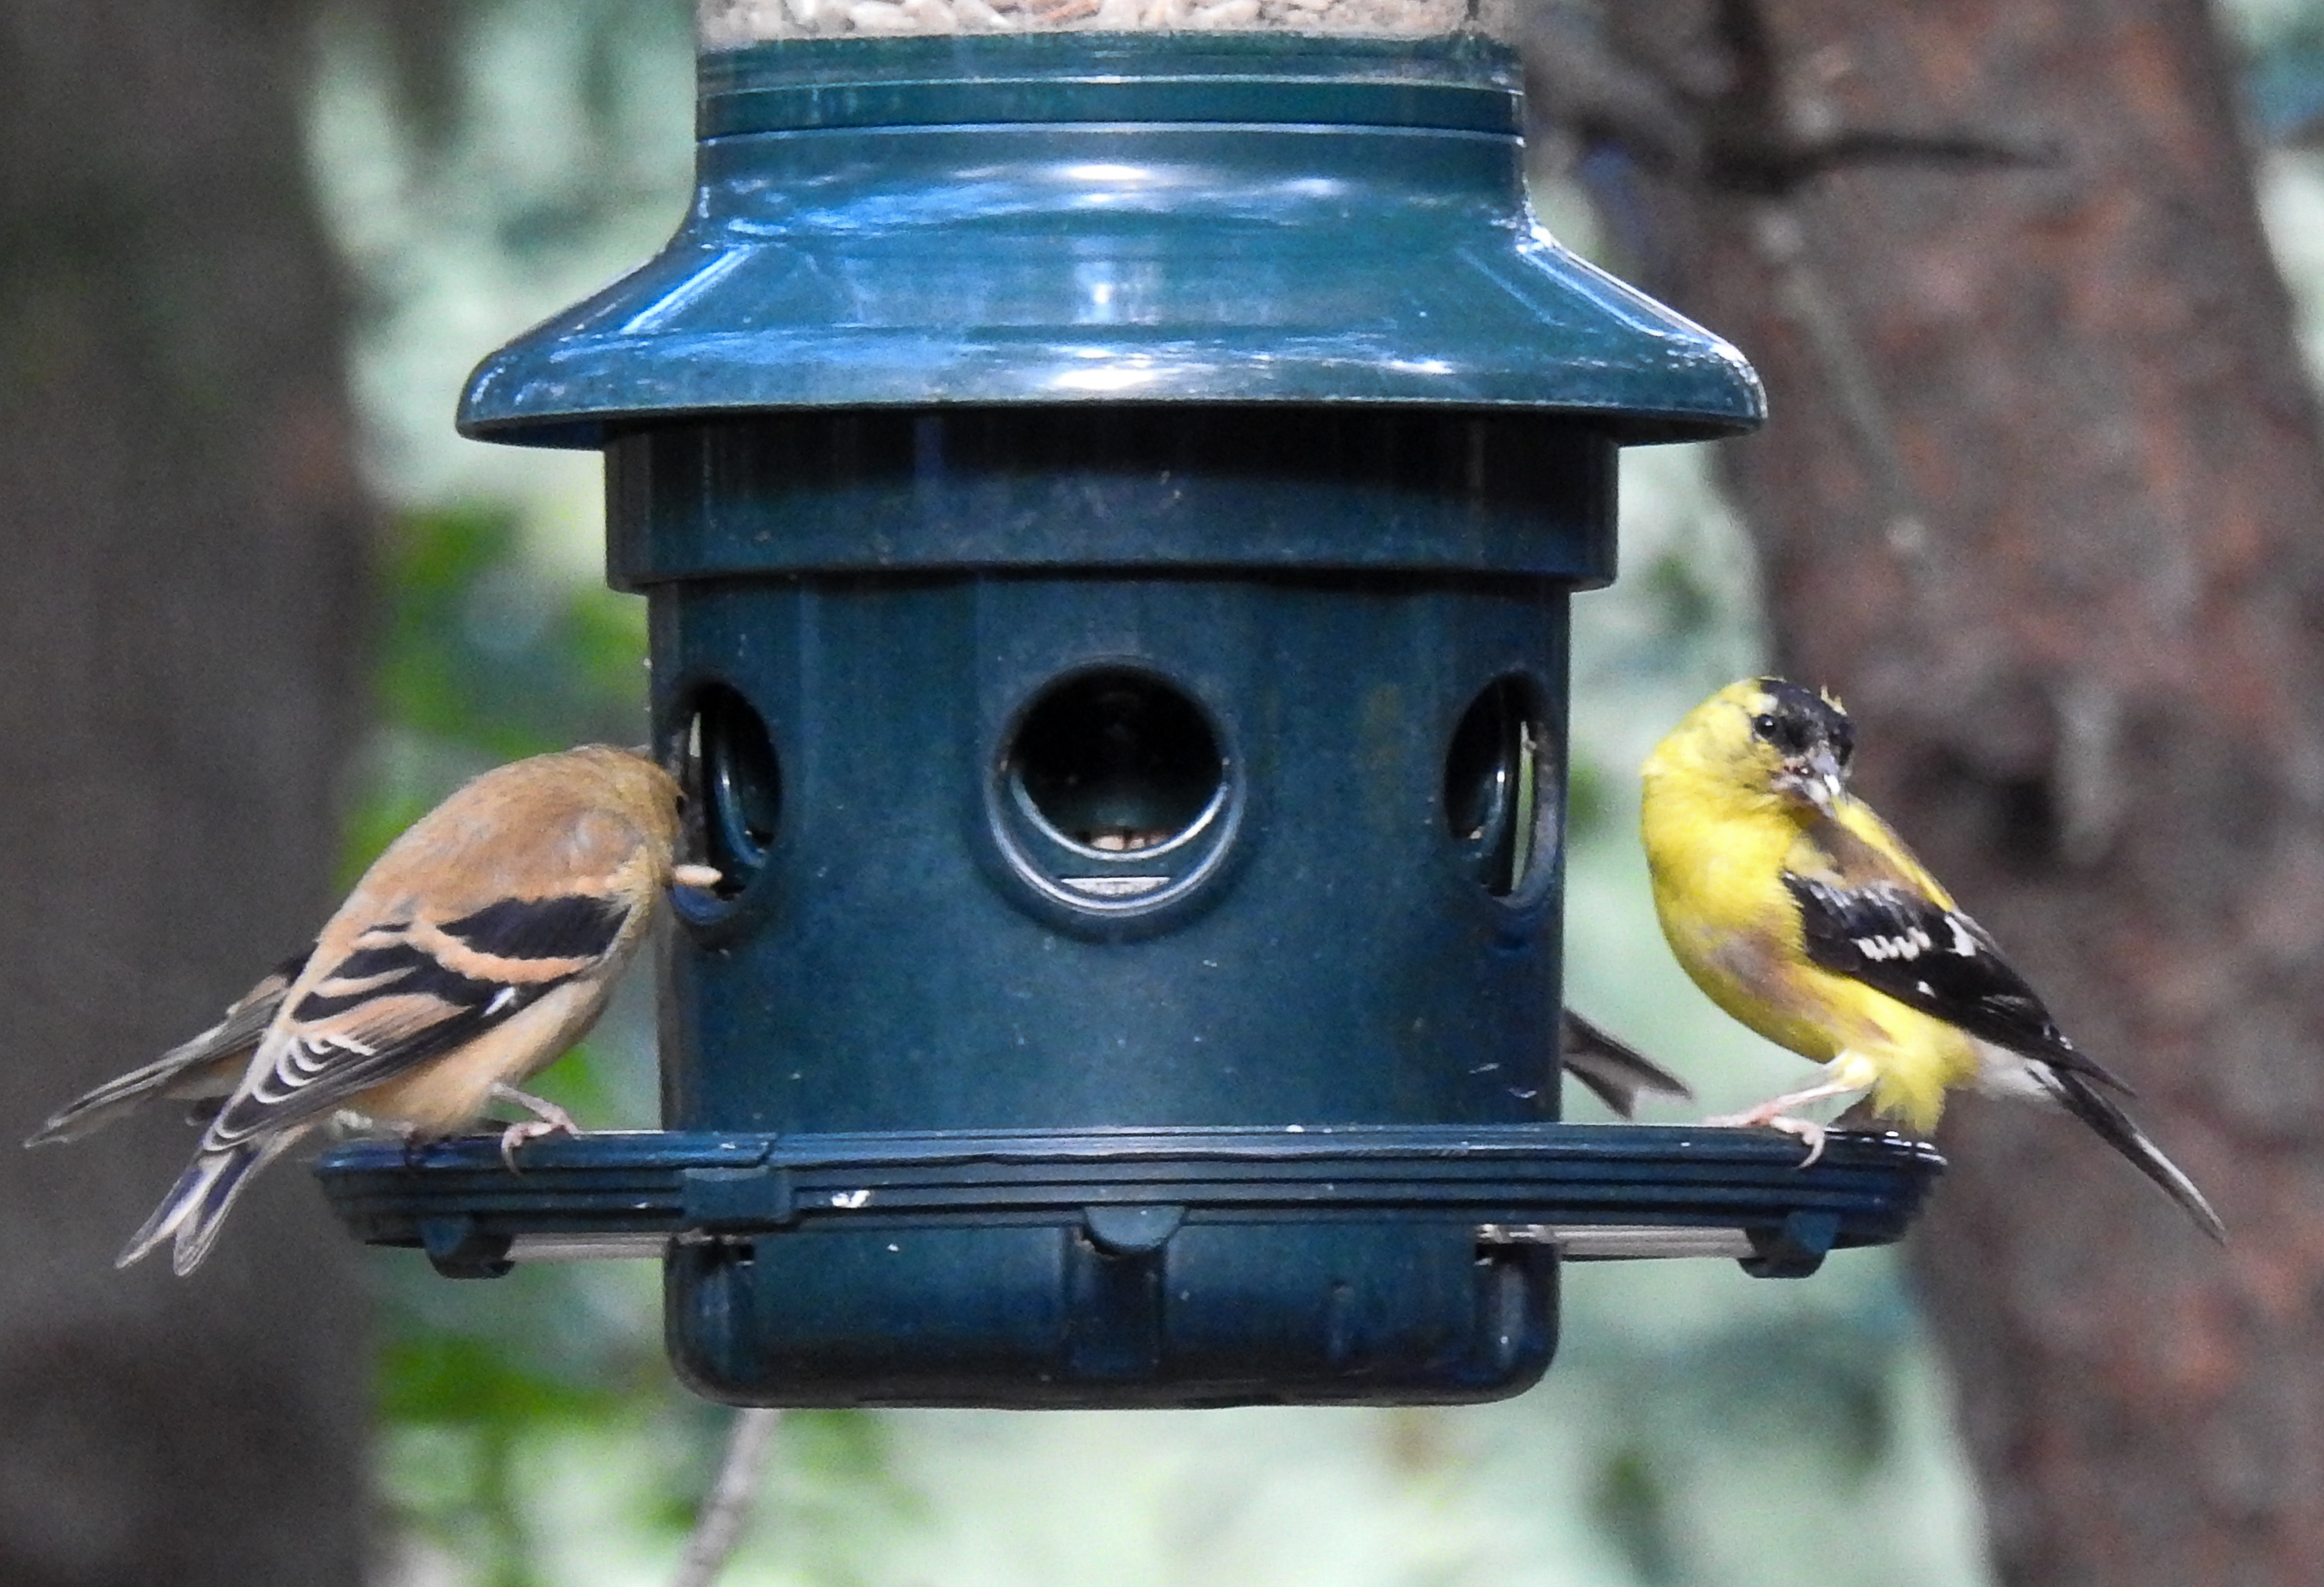 The Male American Goldfinch on the Right is Still Transitioning into Winter Feathers